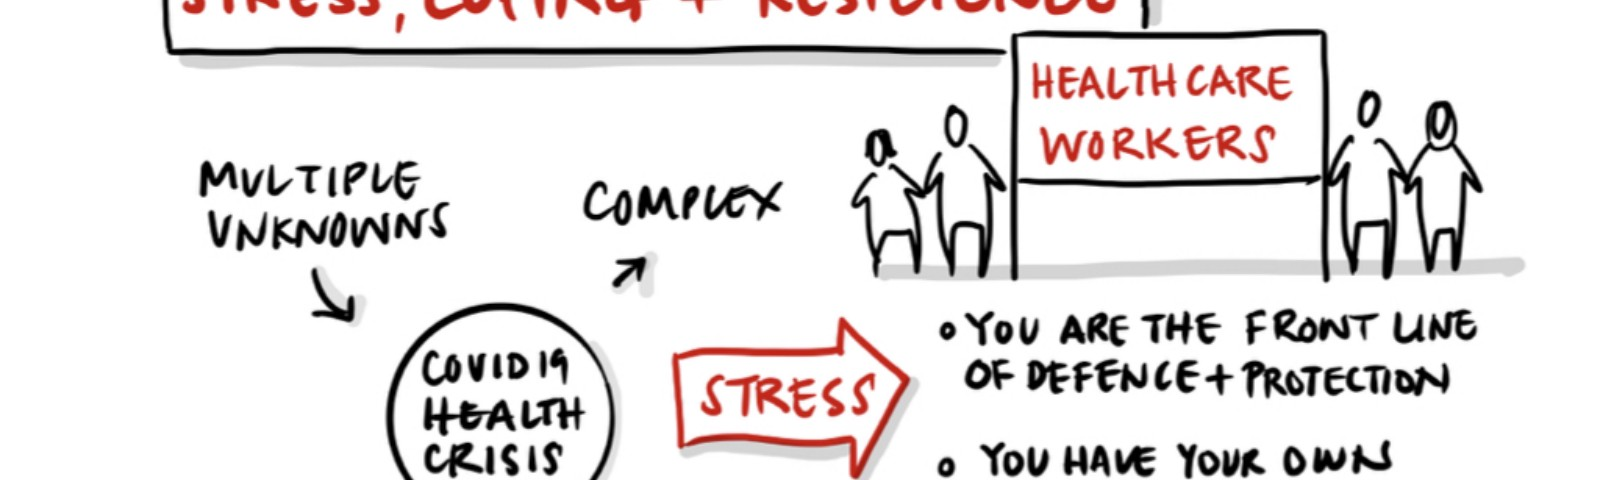 Stress, Coping and Resilience image — figures and diagram of Covid-19 and stress effects